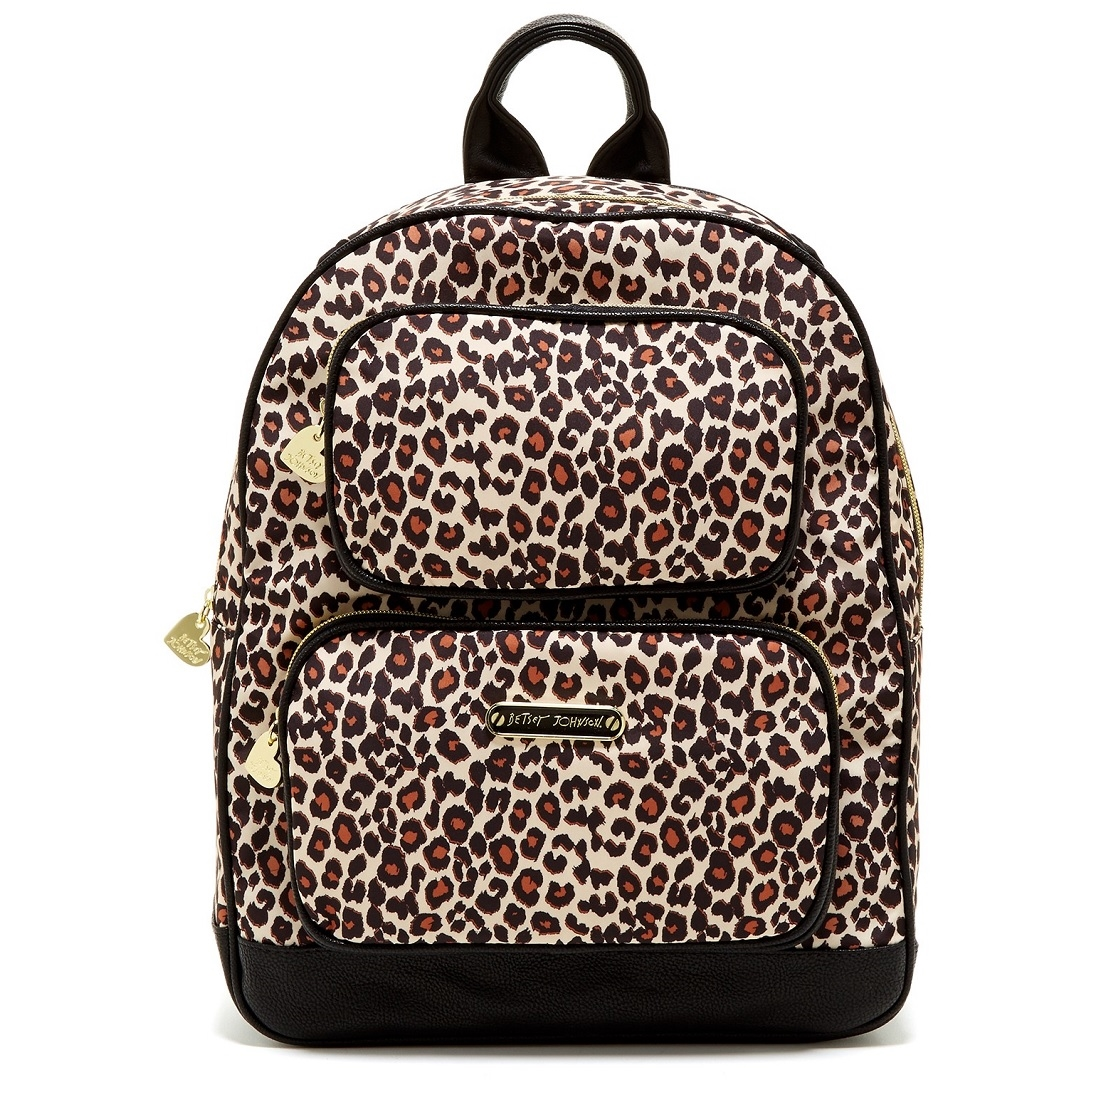 Super Cute Black And Cheetah Backpack. Has A Slot For Laptop, 2 Slots For Water Bottles. Great Condition. Tons Of Life Left.